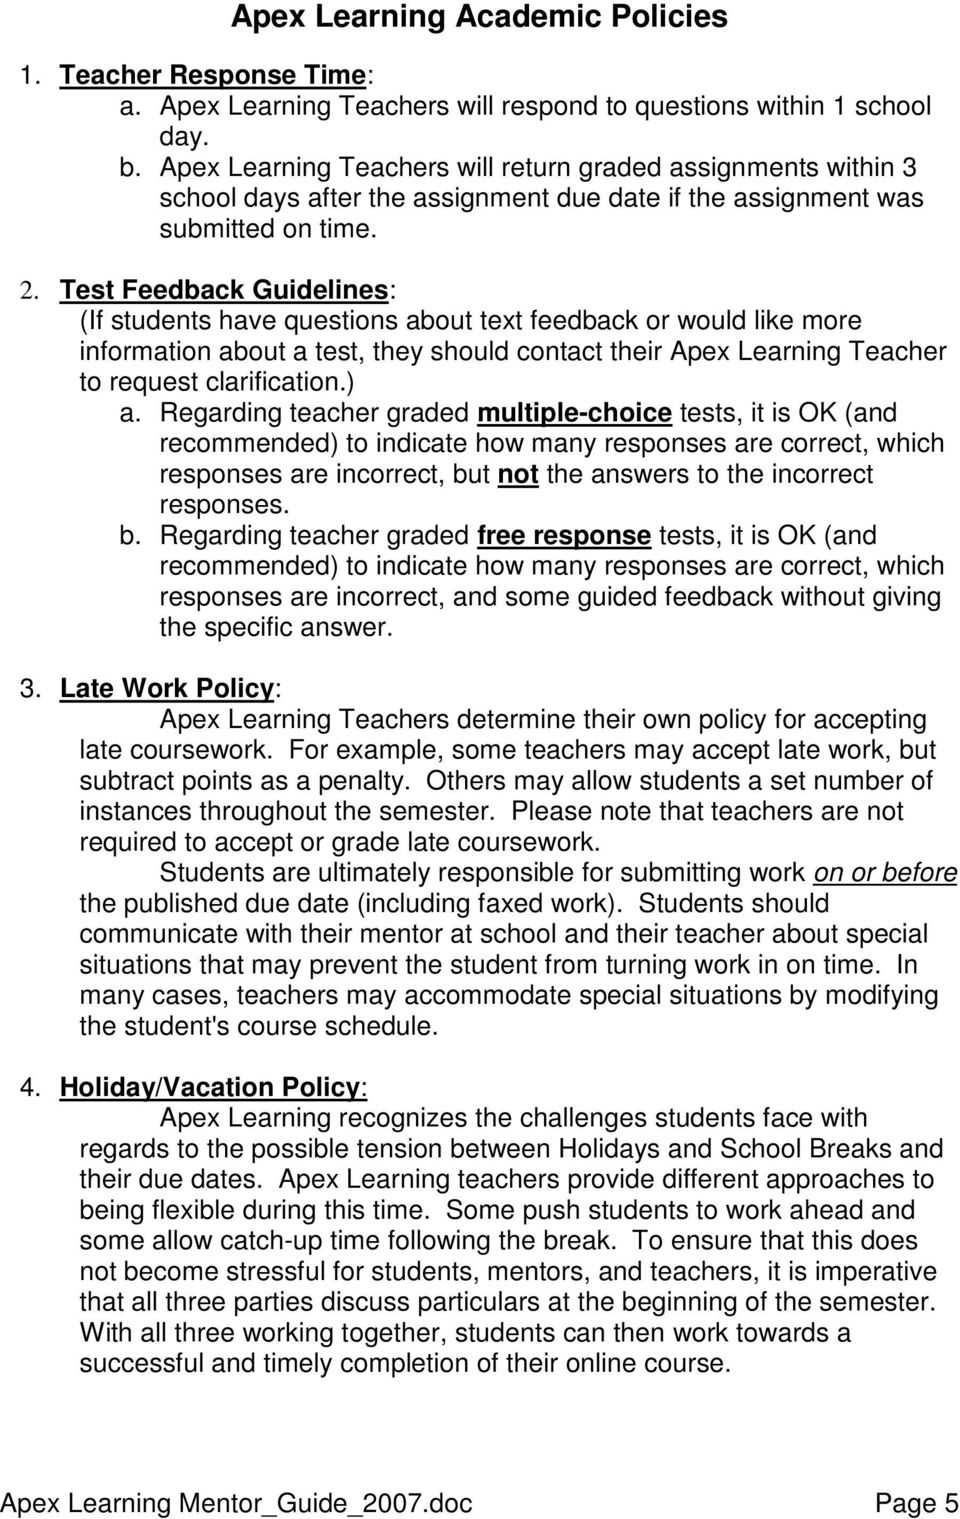 Test Feedback Guidelines: (If students have questions about text feedback or would like more information about a test, they should contact their Apex Learning Teacher to request clarification.) a.